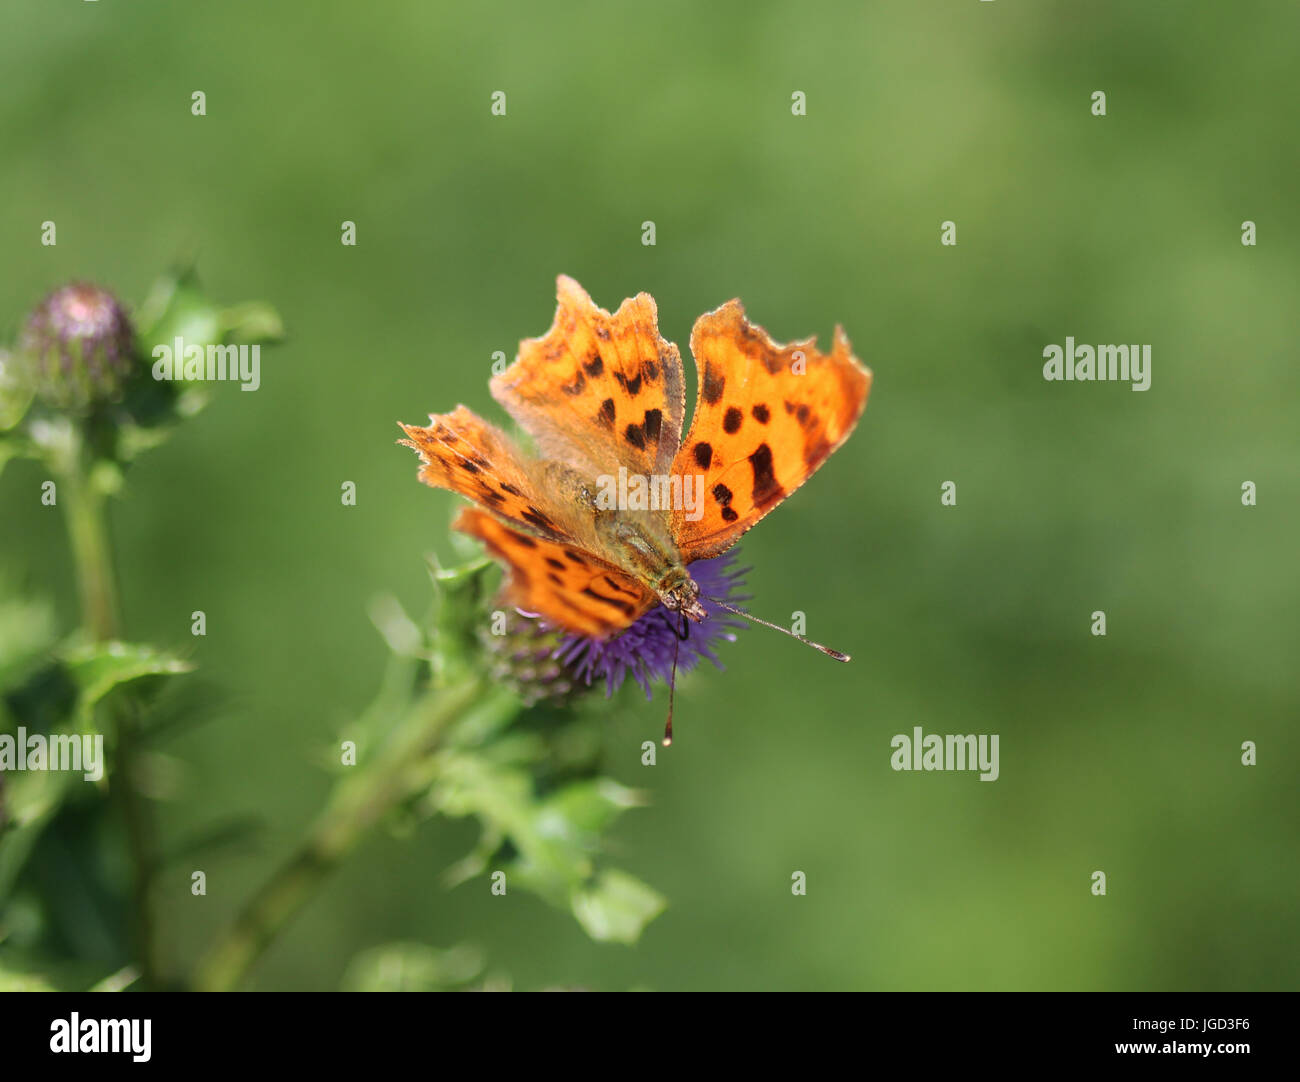 Comma butterfly - Stock Image